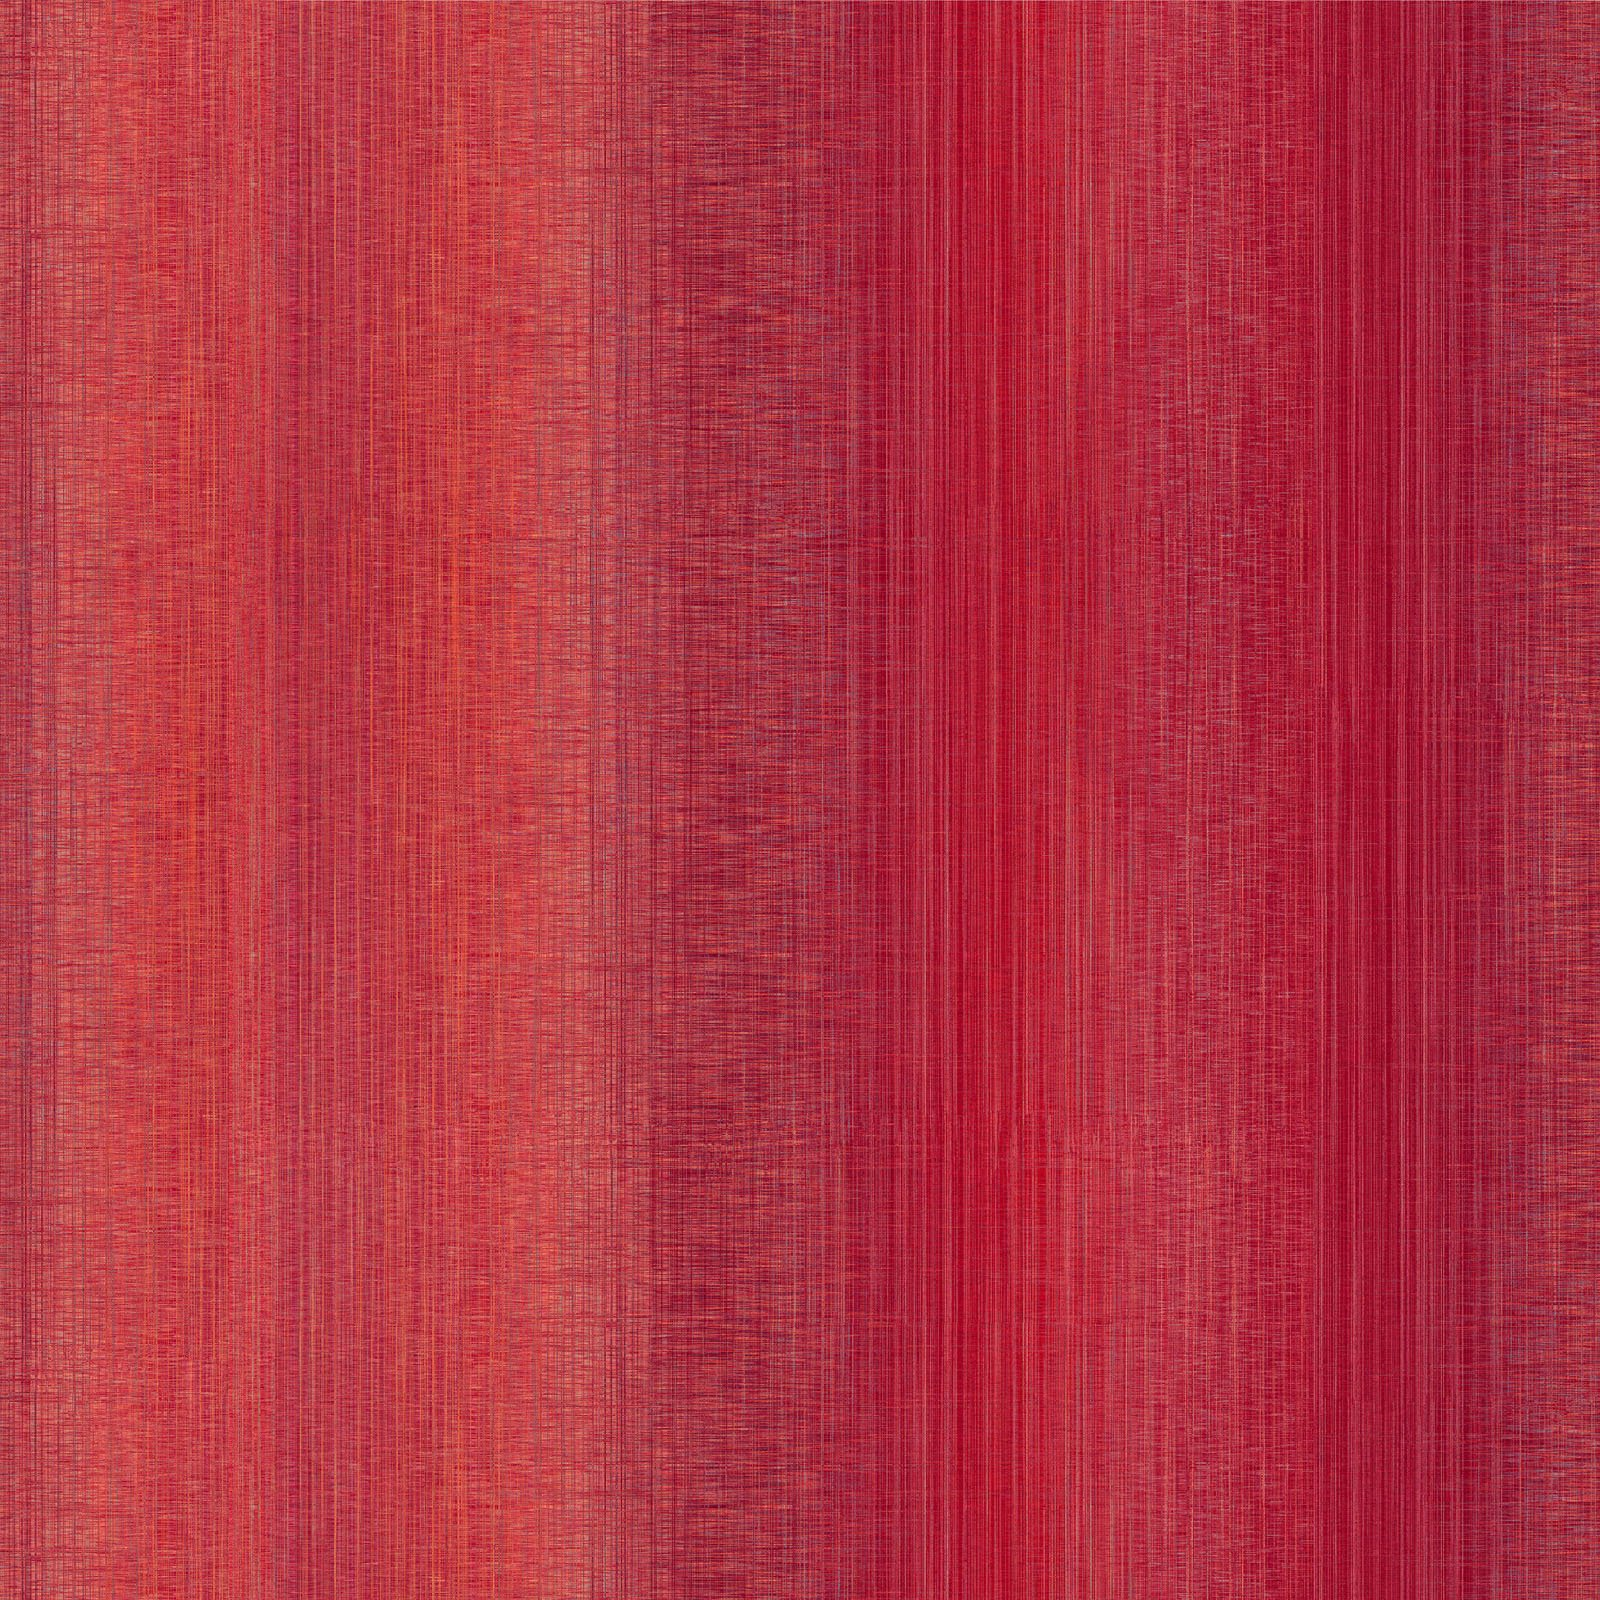 OMBR-4498 R - OMBRE 108 DIGITAL BY P&B BOUTIQUE RED - ARRIVING IN AUGUST 2021